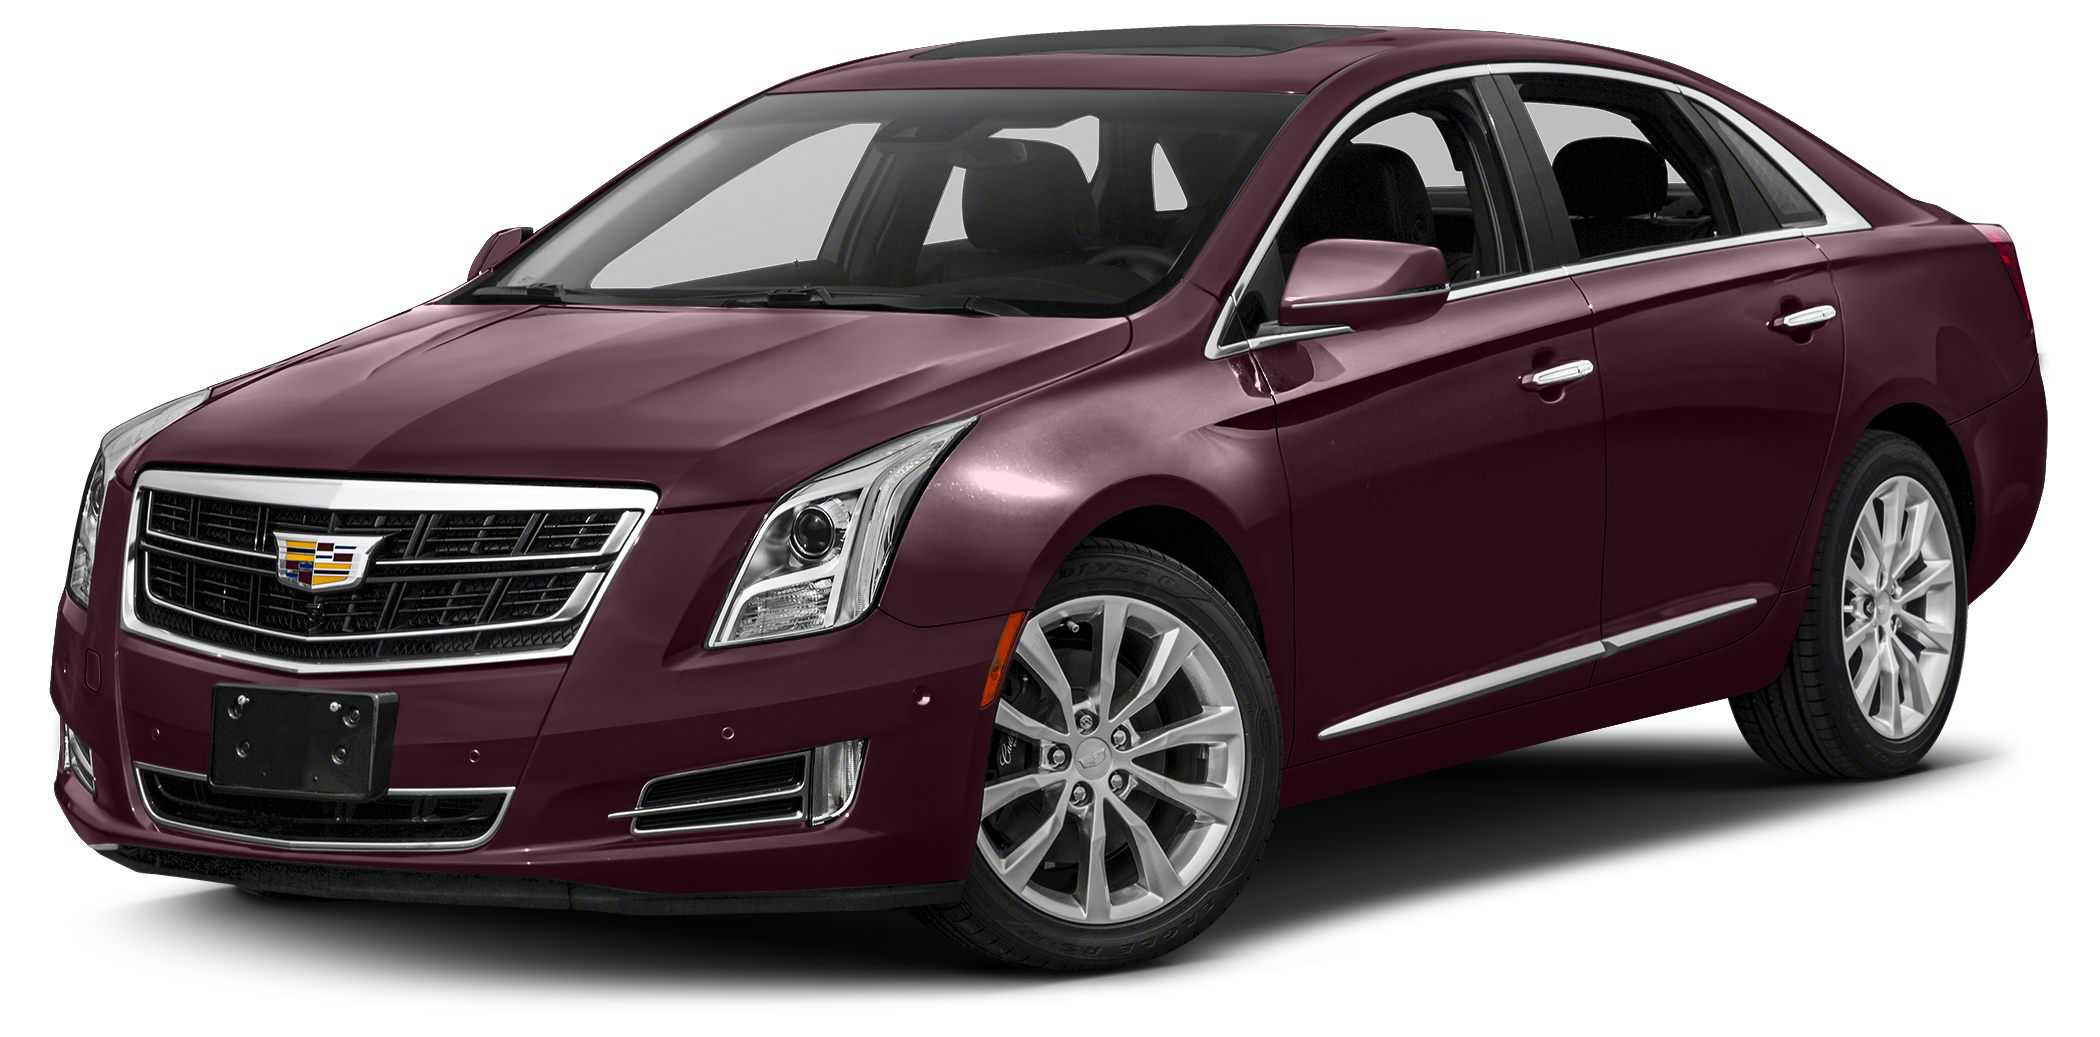 2017 cadillac xts for sale in cockeysville md 2g61m5s31h9133500. Black Bedroom Furniture Sets. Home Design Ideas